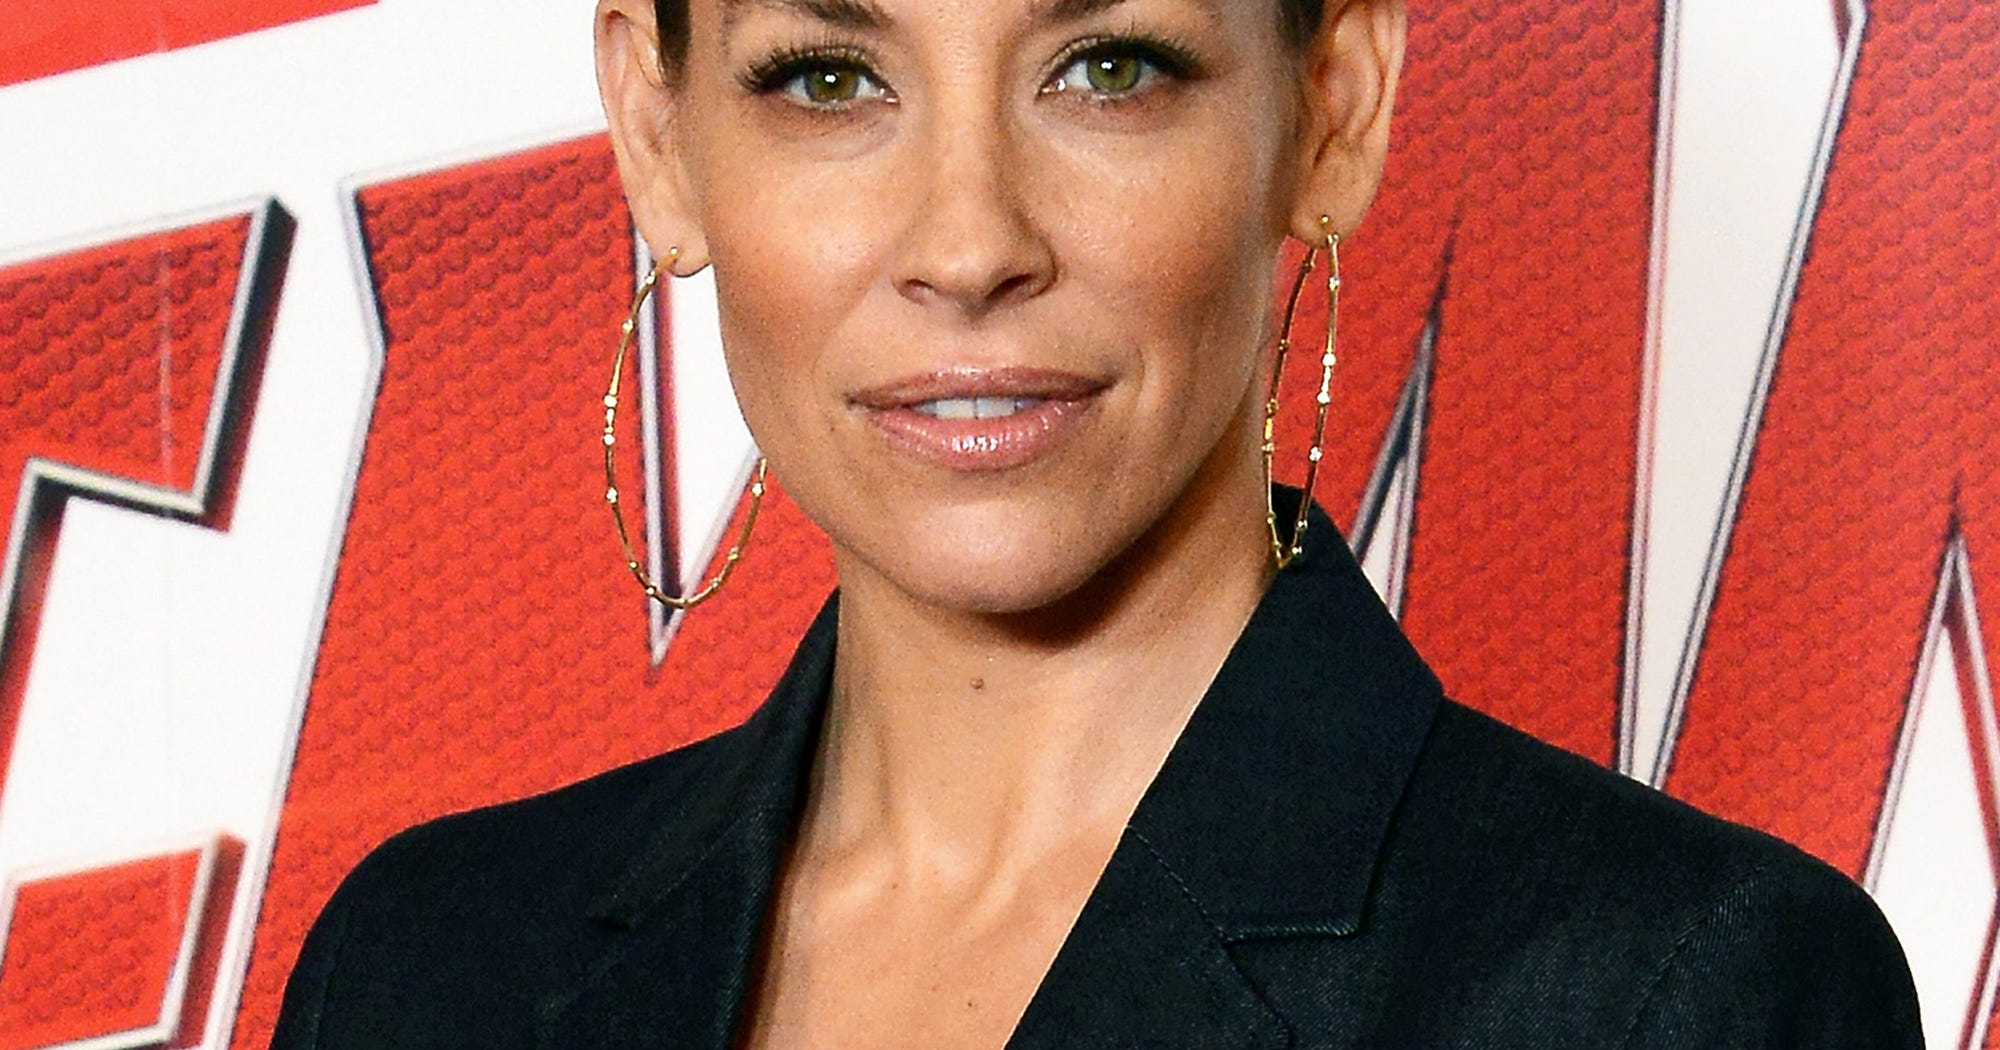 Why Evangeline Lilly Wont Do Nude Scenes Anymore